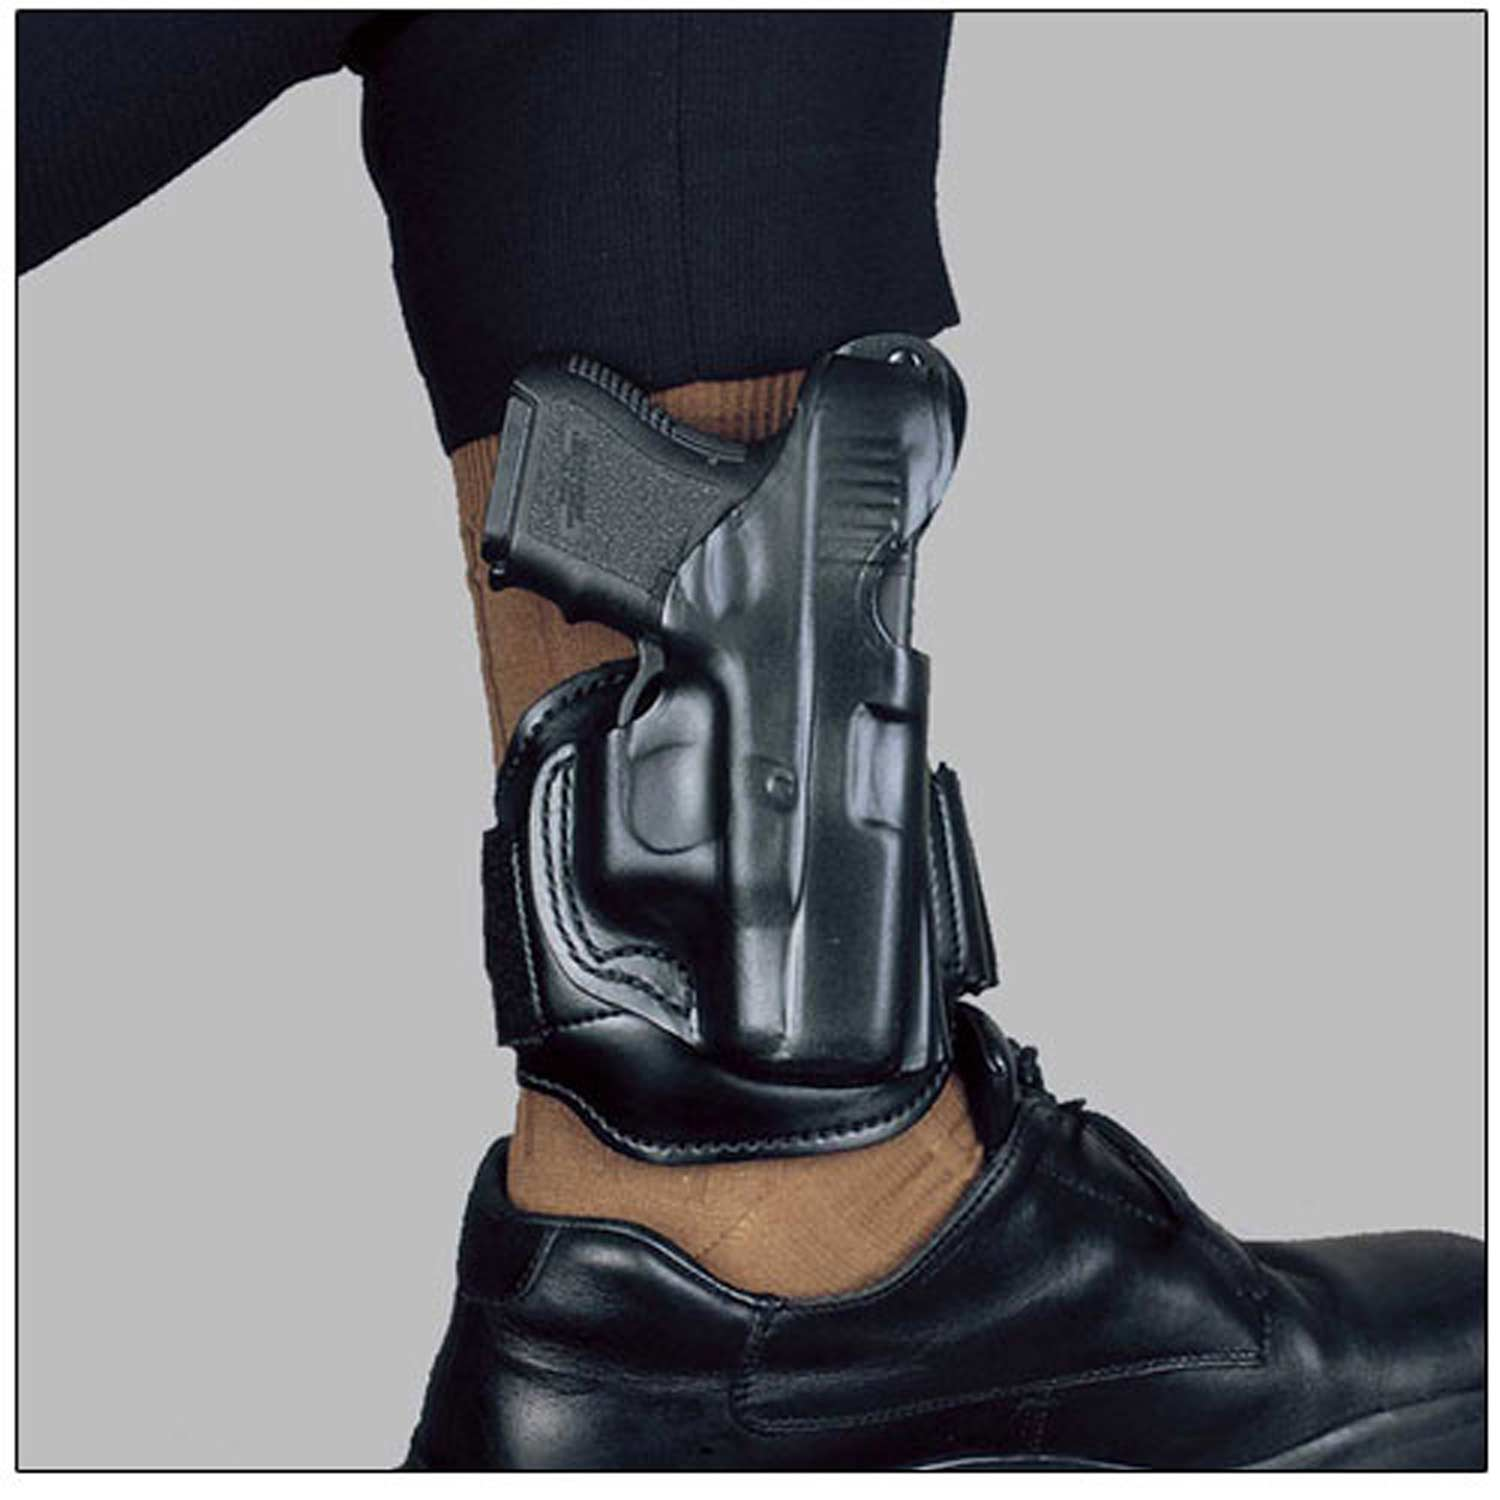 DeSantis Leather Ankle Rig Holster